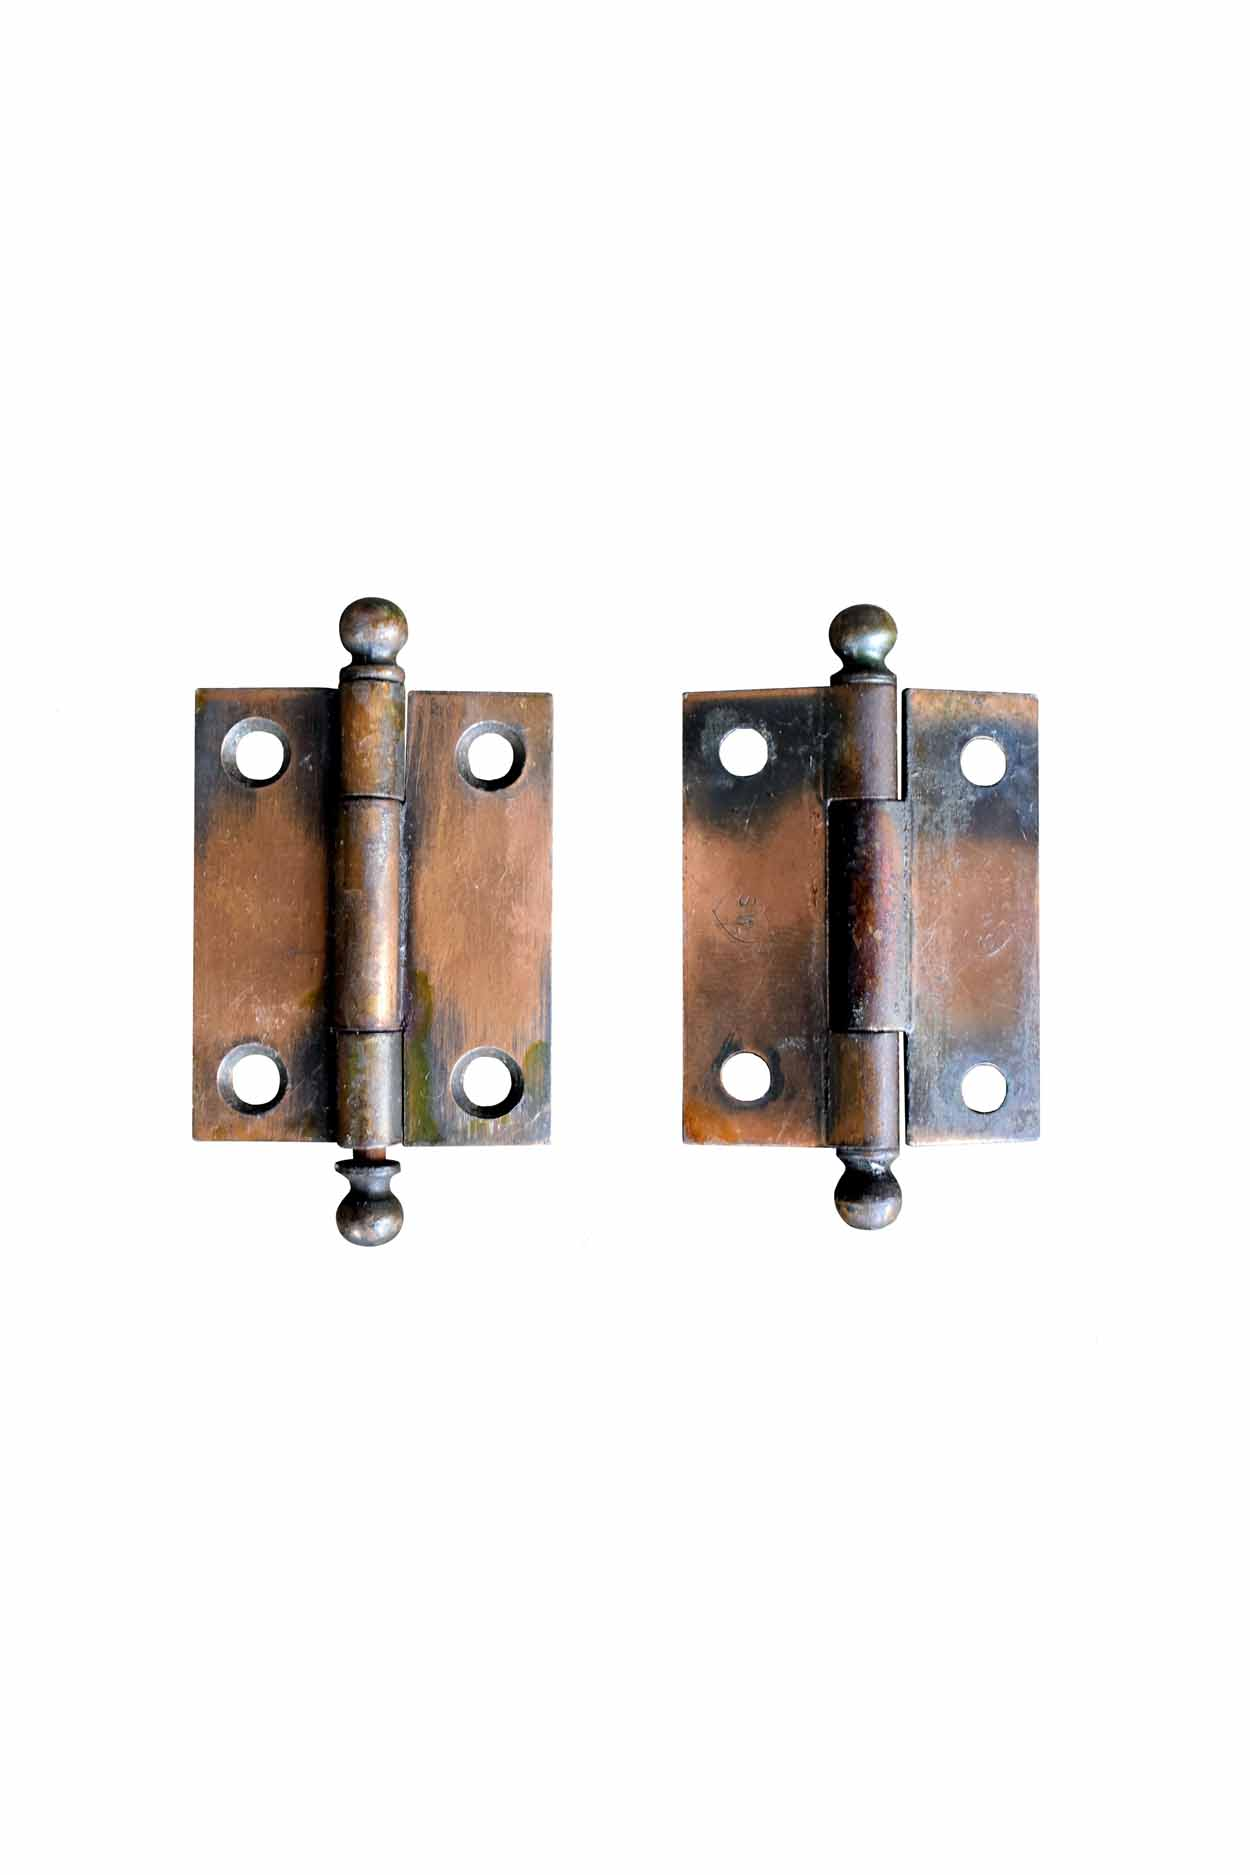 "GILT AND SATIN 1.5"" X 2"" CABINET HINGES AA# H20141   26 available in 2 varieties from $22.00 each"